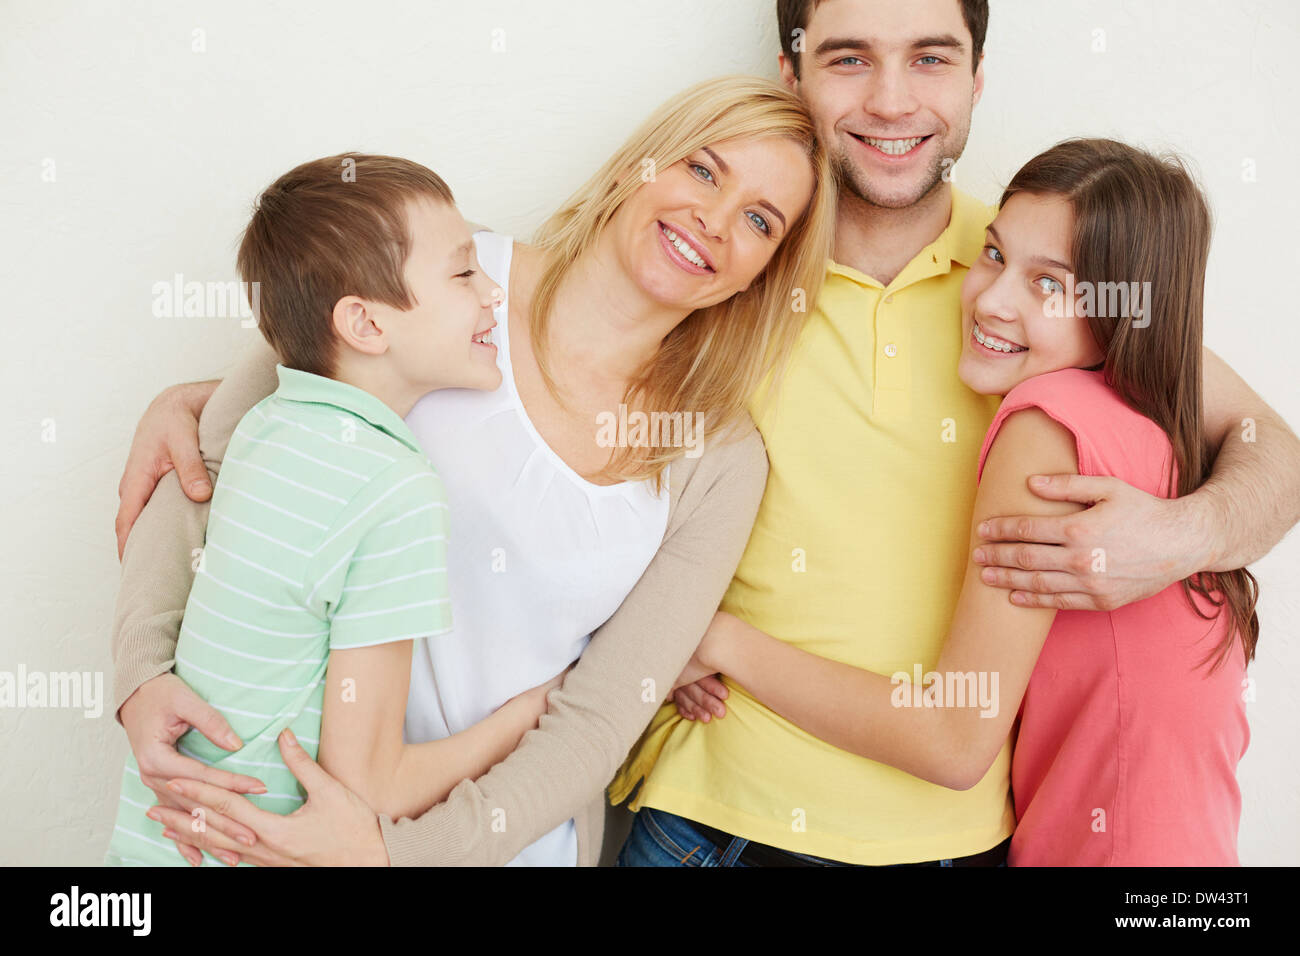 Portrait of affectionate family of four embracing Stock Photo